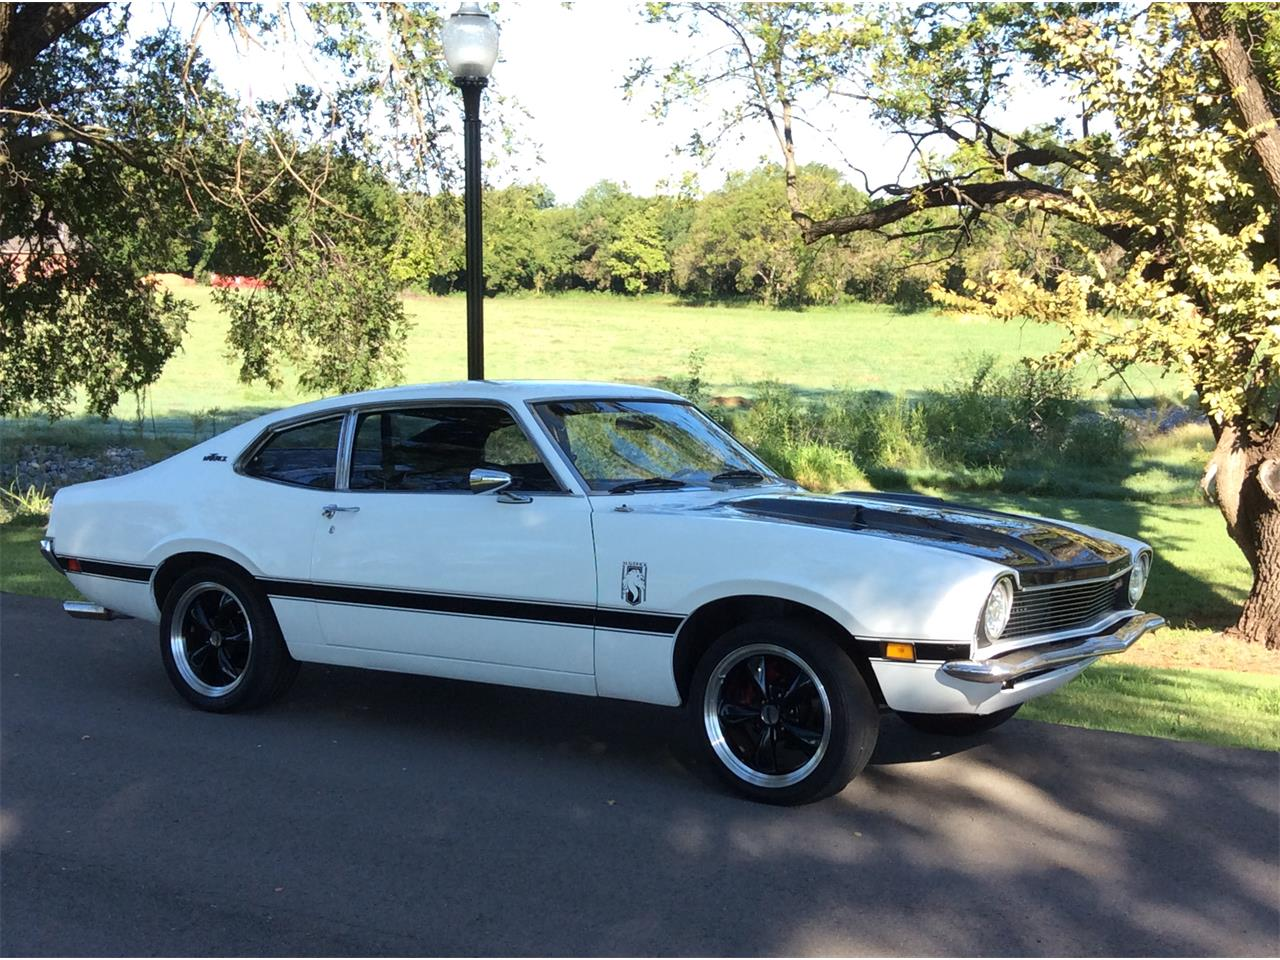 Ford Maverick For Sale >> For Sale 1976 Ford Maverick In Tuttle Oklahoma